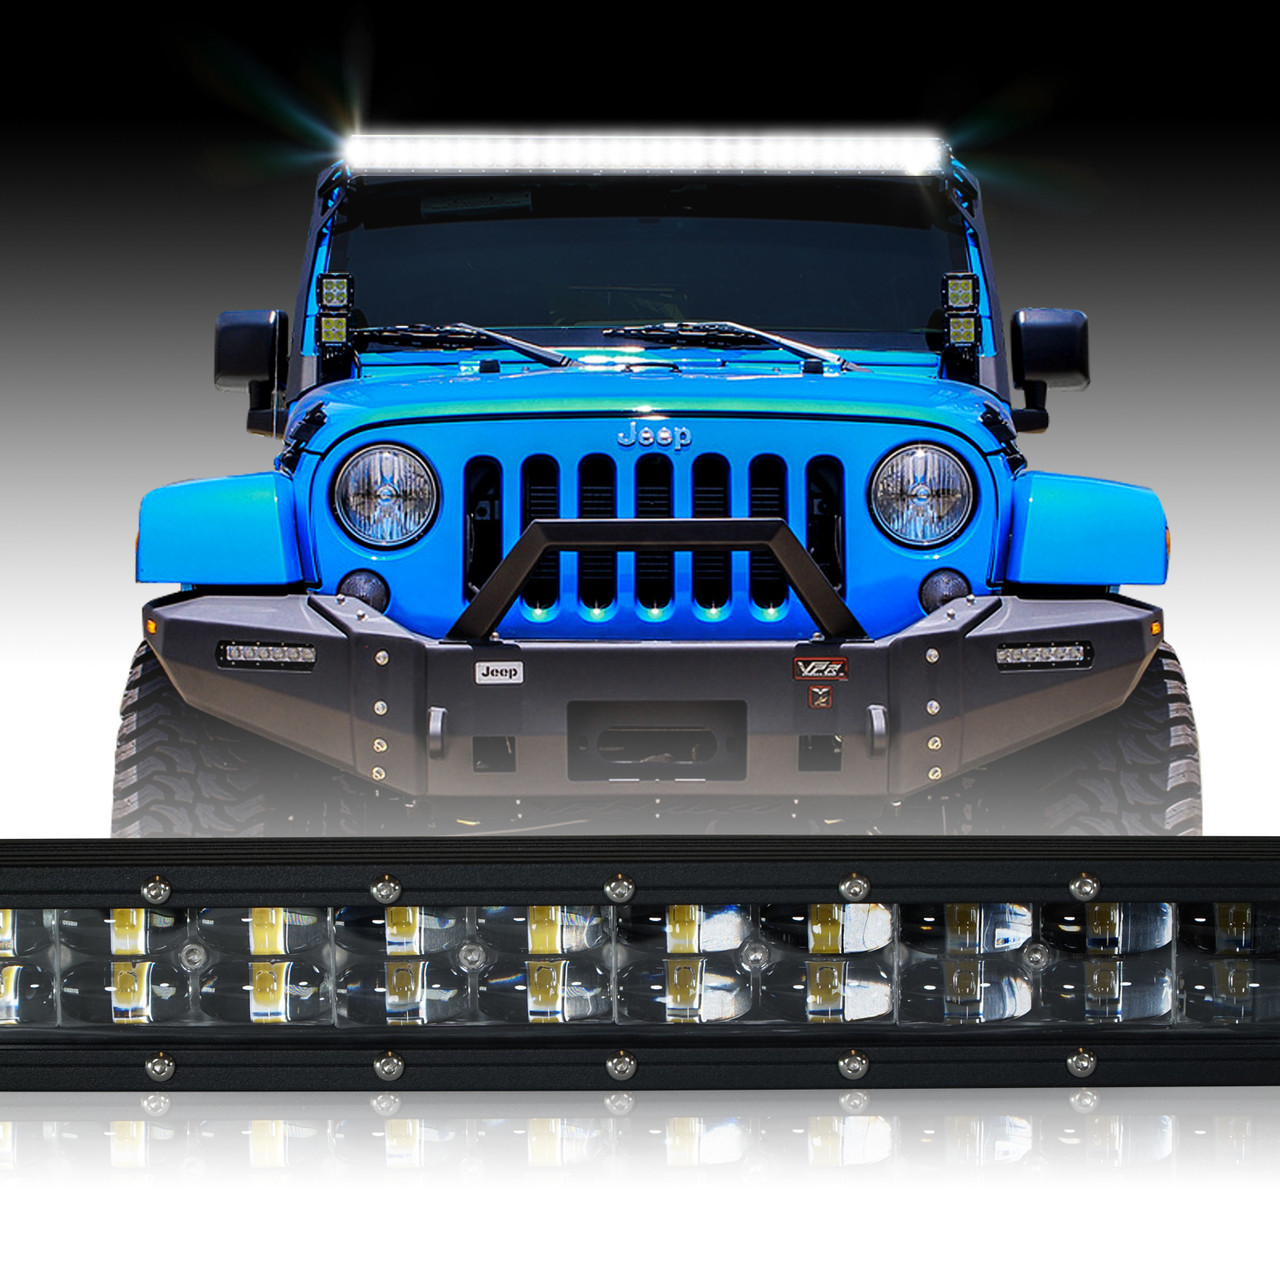 small resolution of led light bar 288w 50 inches bracket wiring harness kit for wrangler jk 2007 2017